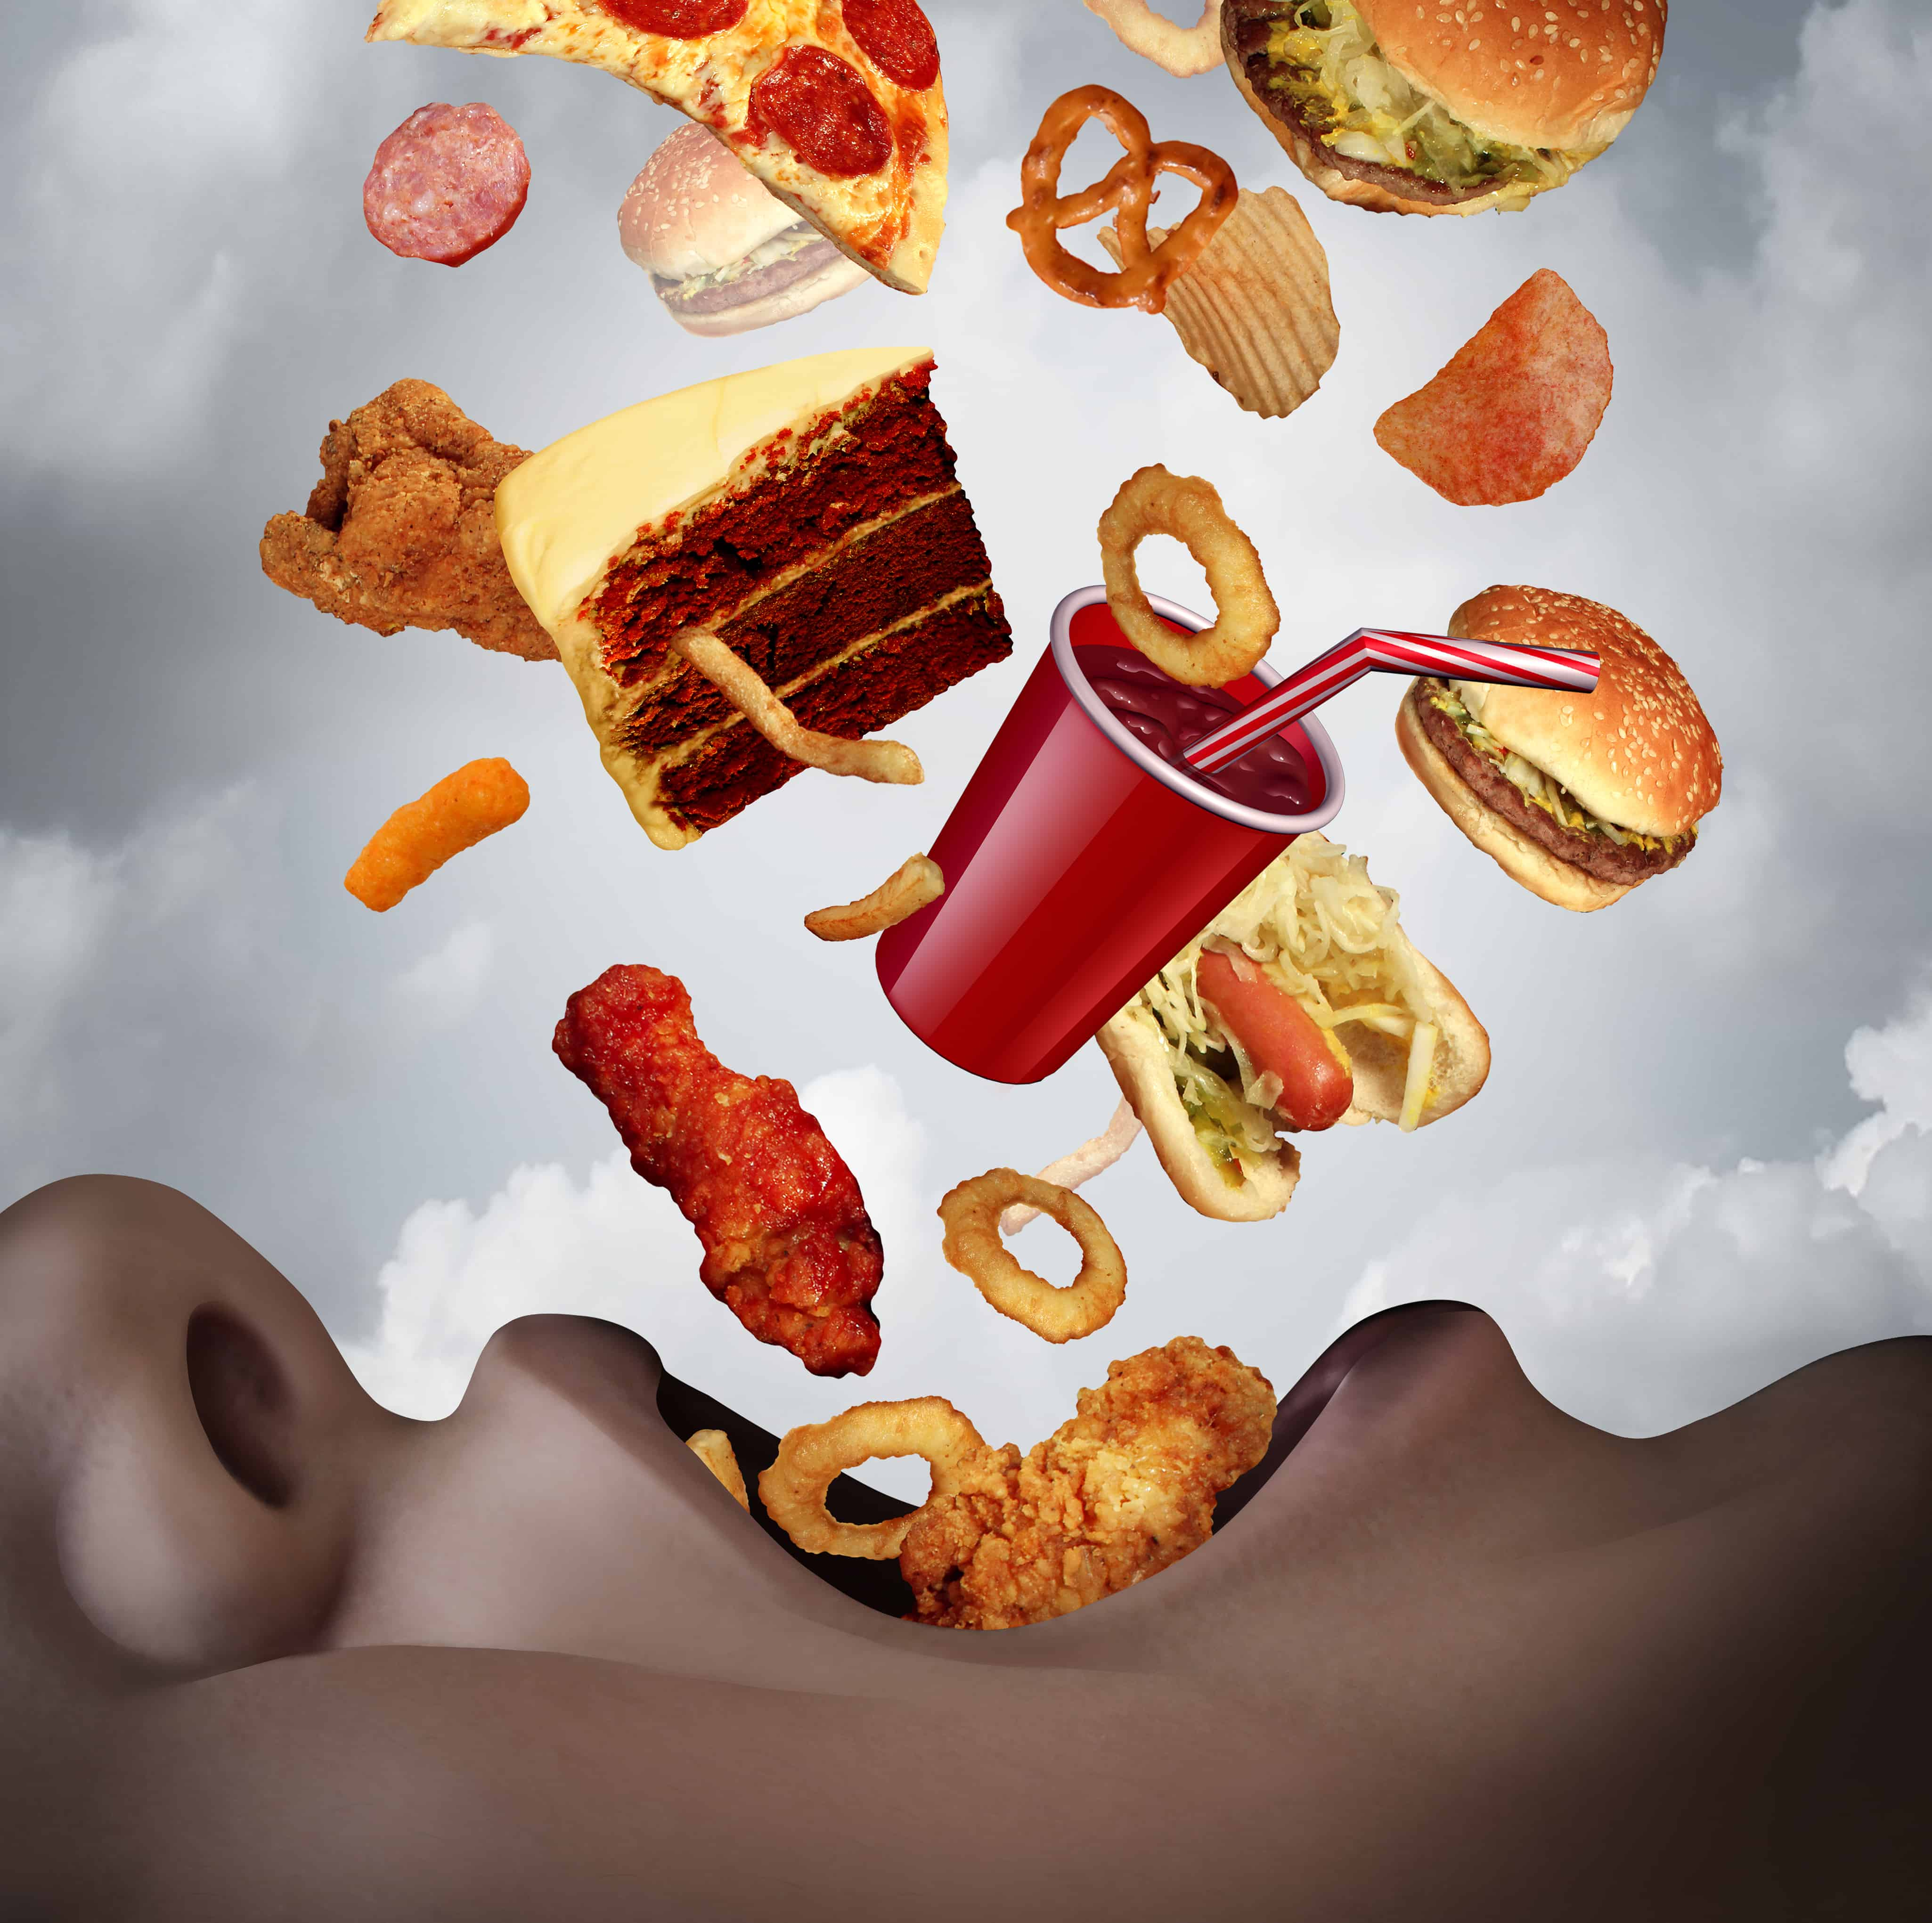 8 common signs that you have food addiction